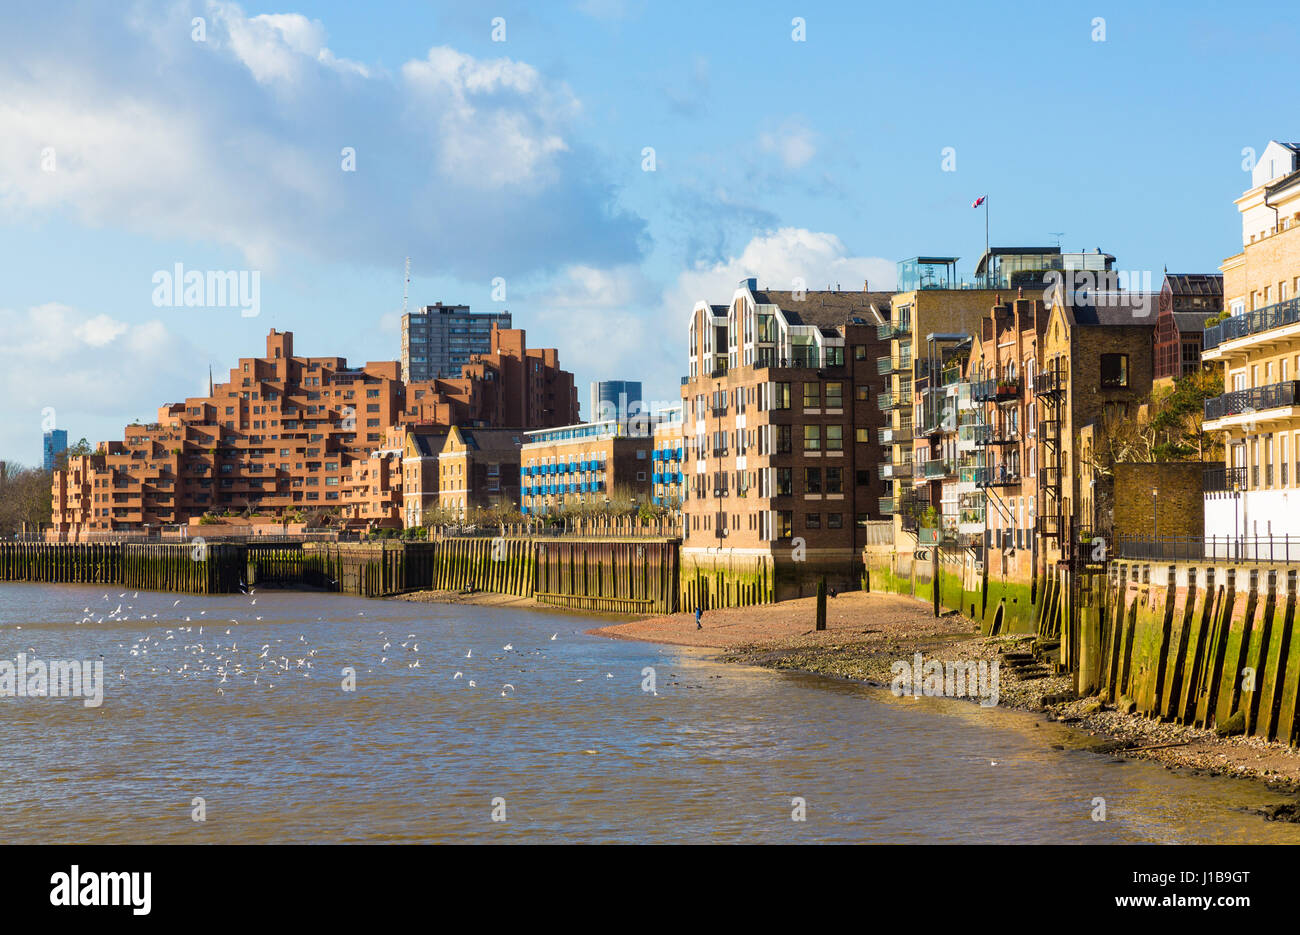 Residential apartment buildings on the River Thames from Canary Wharf, Docklands, London, England - Stock Image